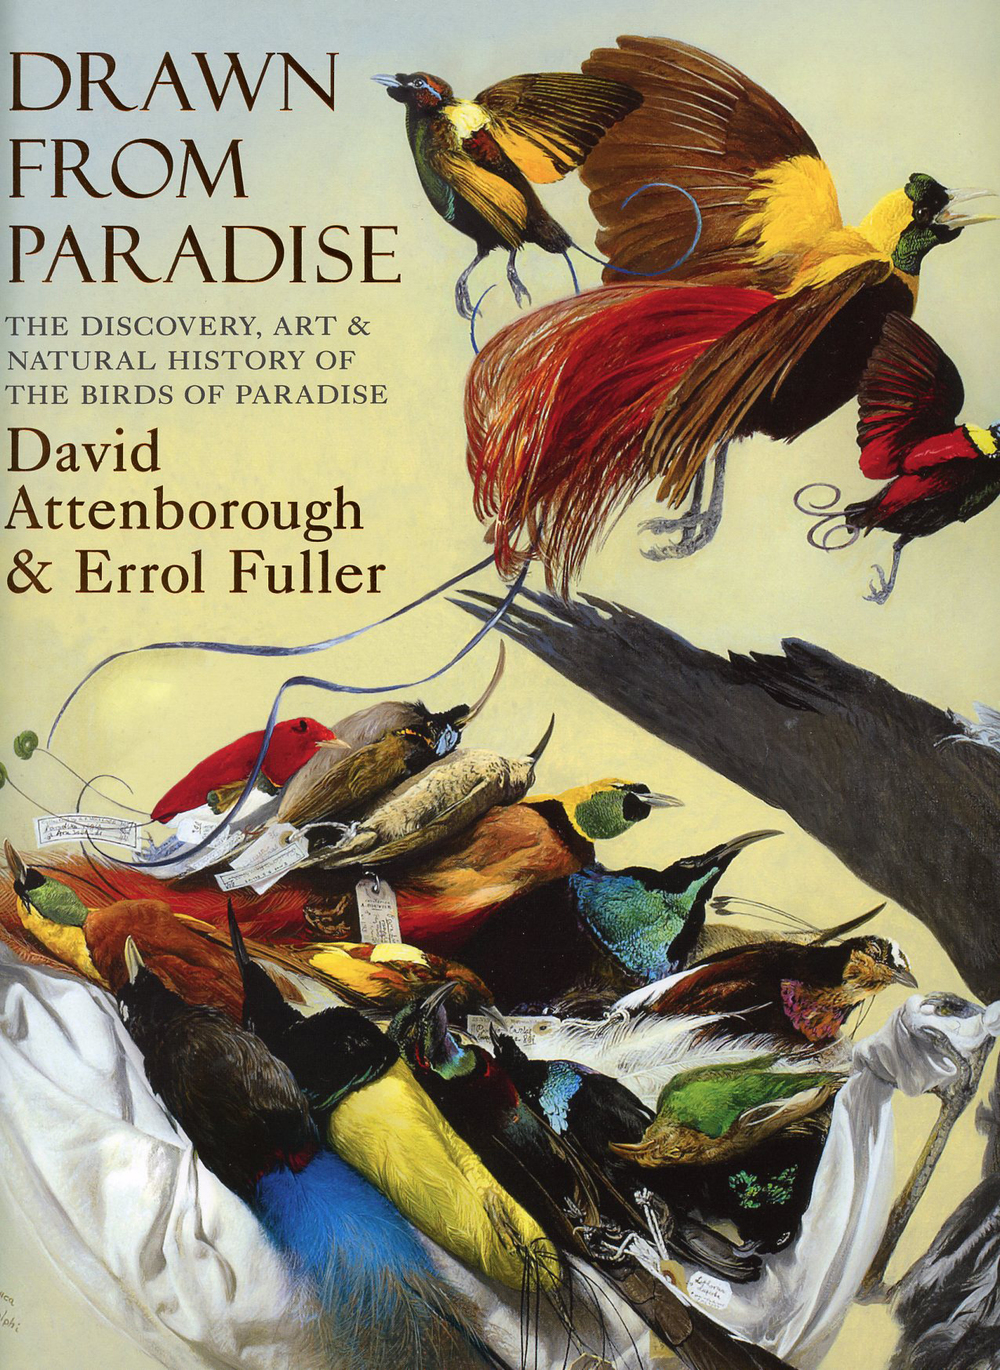 Drawn From Paradise.  David Attenborough & Errol Fuller.